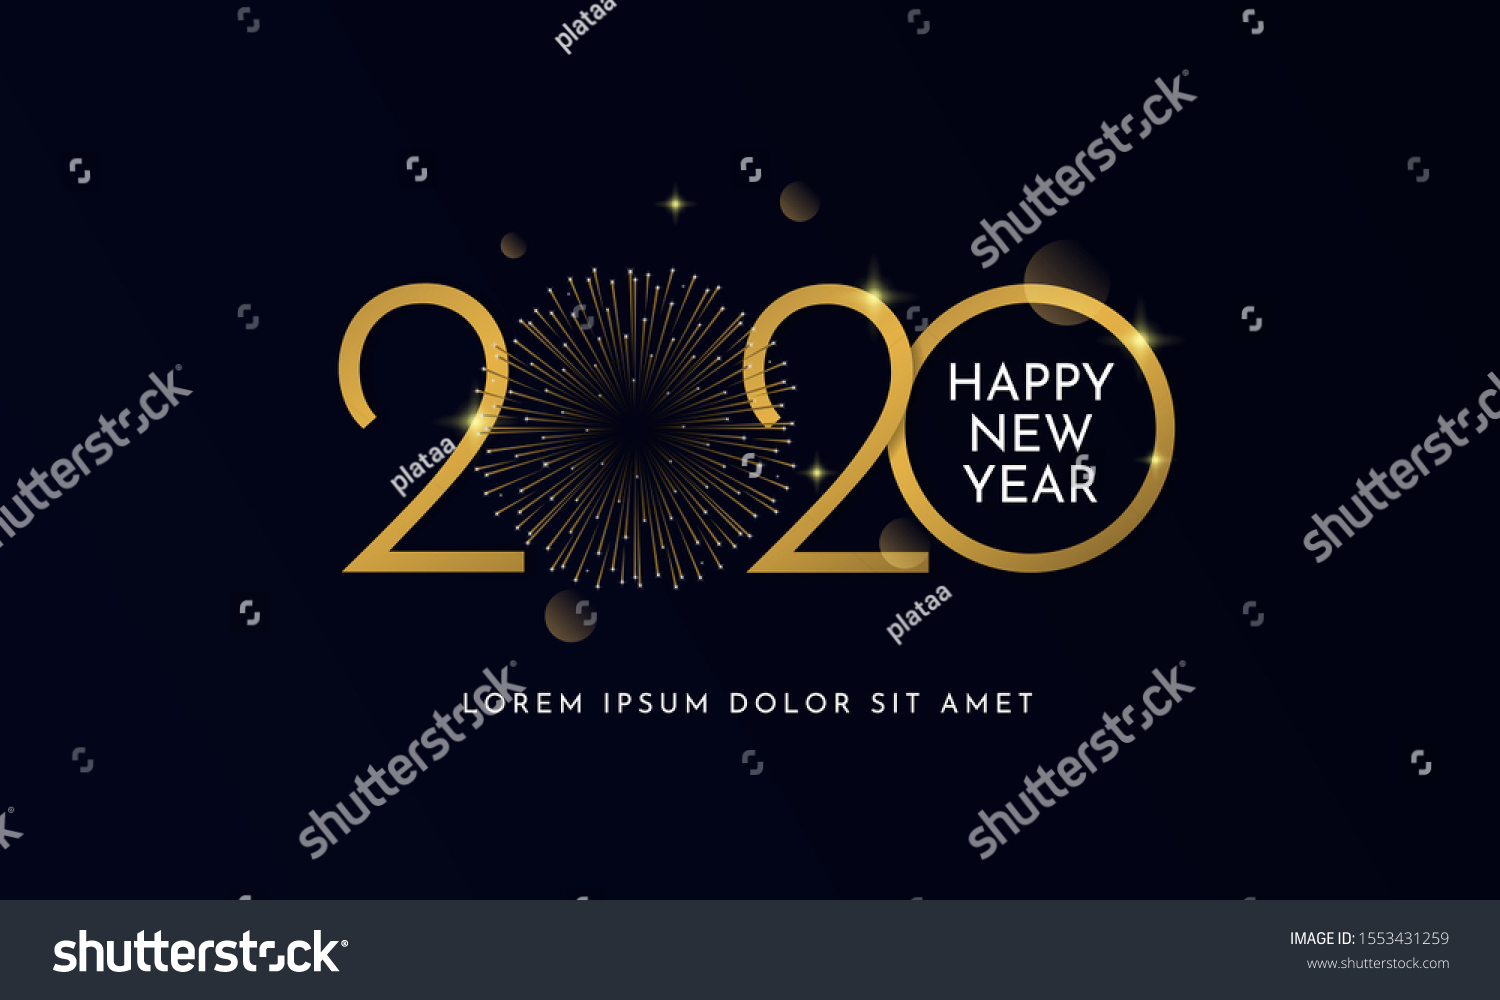 Happy new year 2020 typography text celebration poster design. glowing golden number with gold fireworks explosion element and dark sky background vector illustration. #1553431259